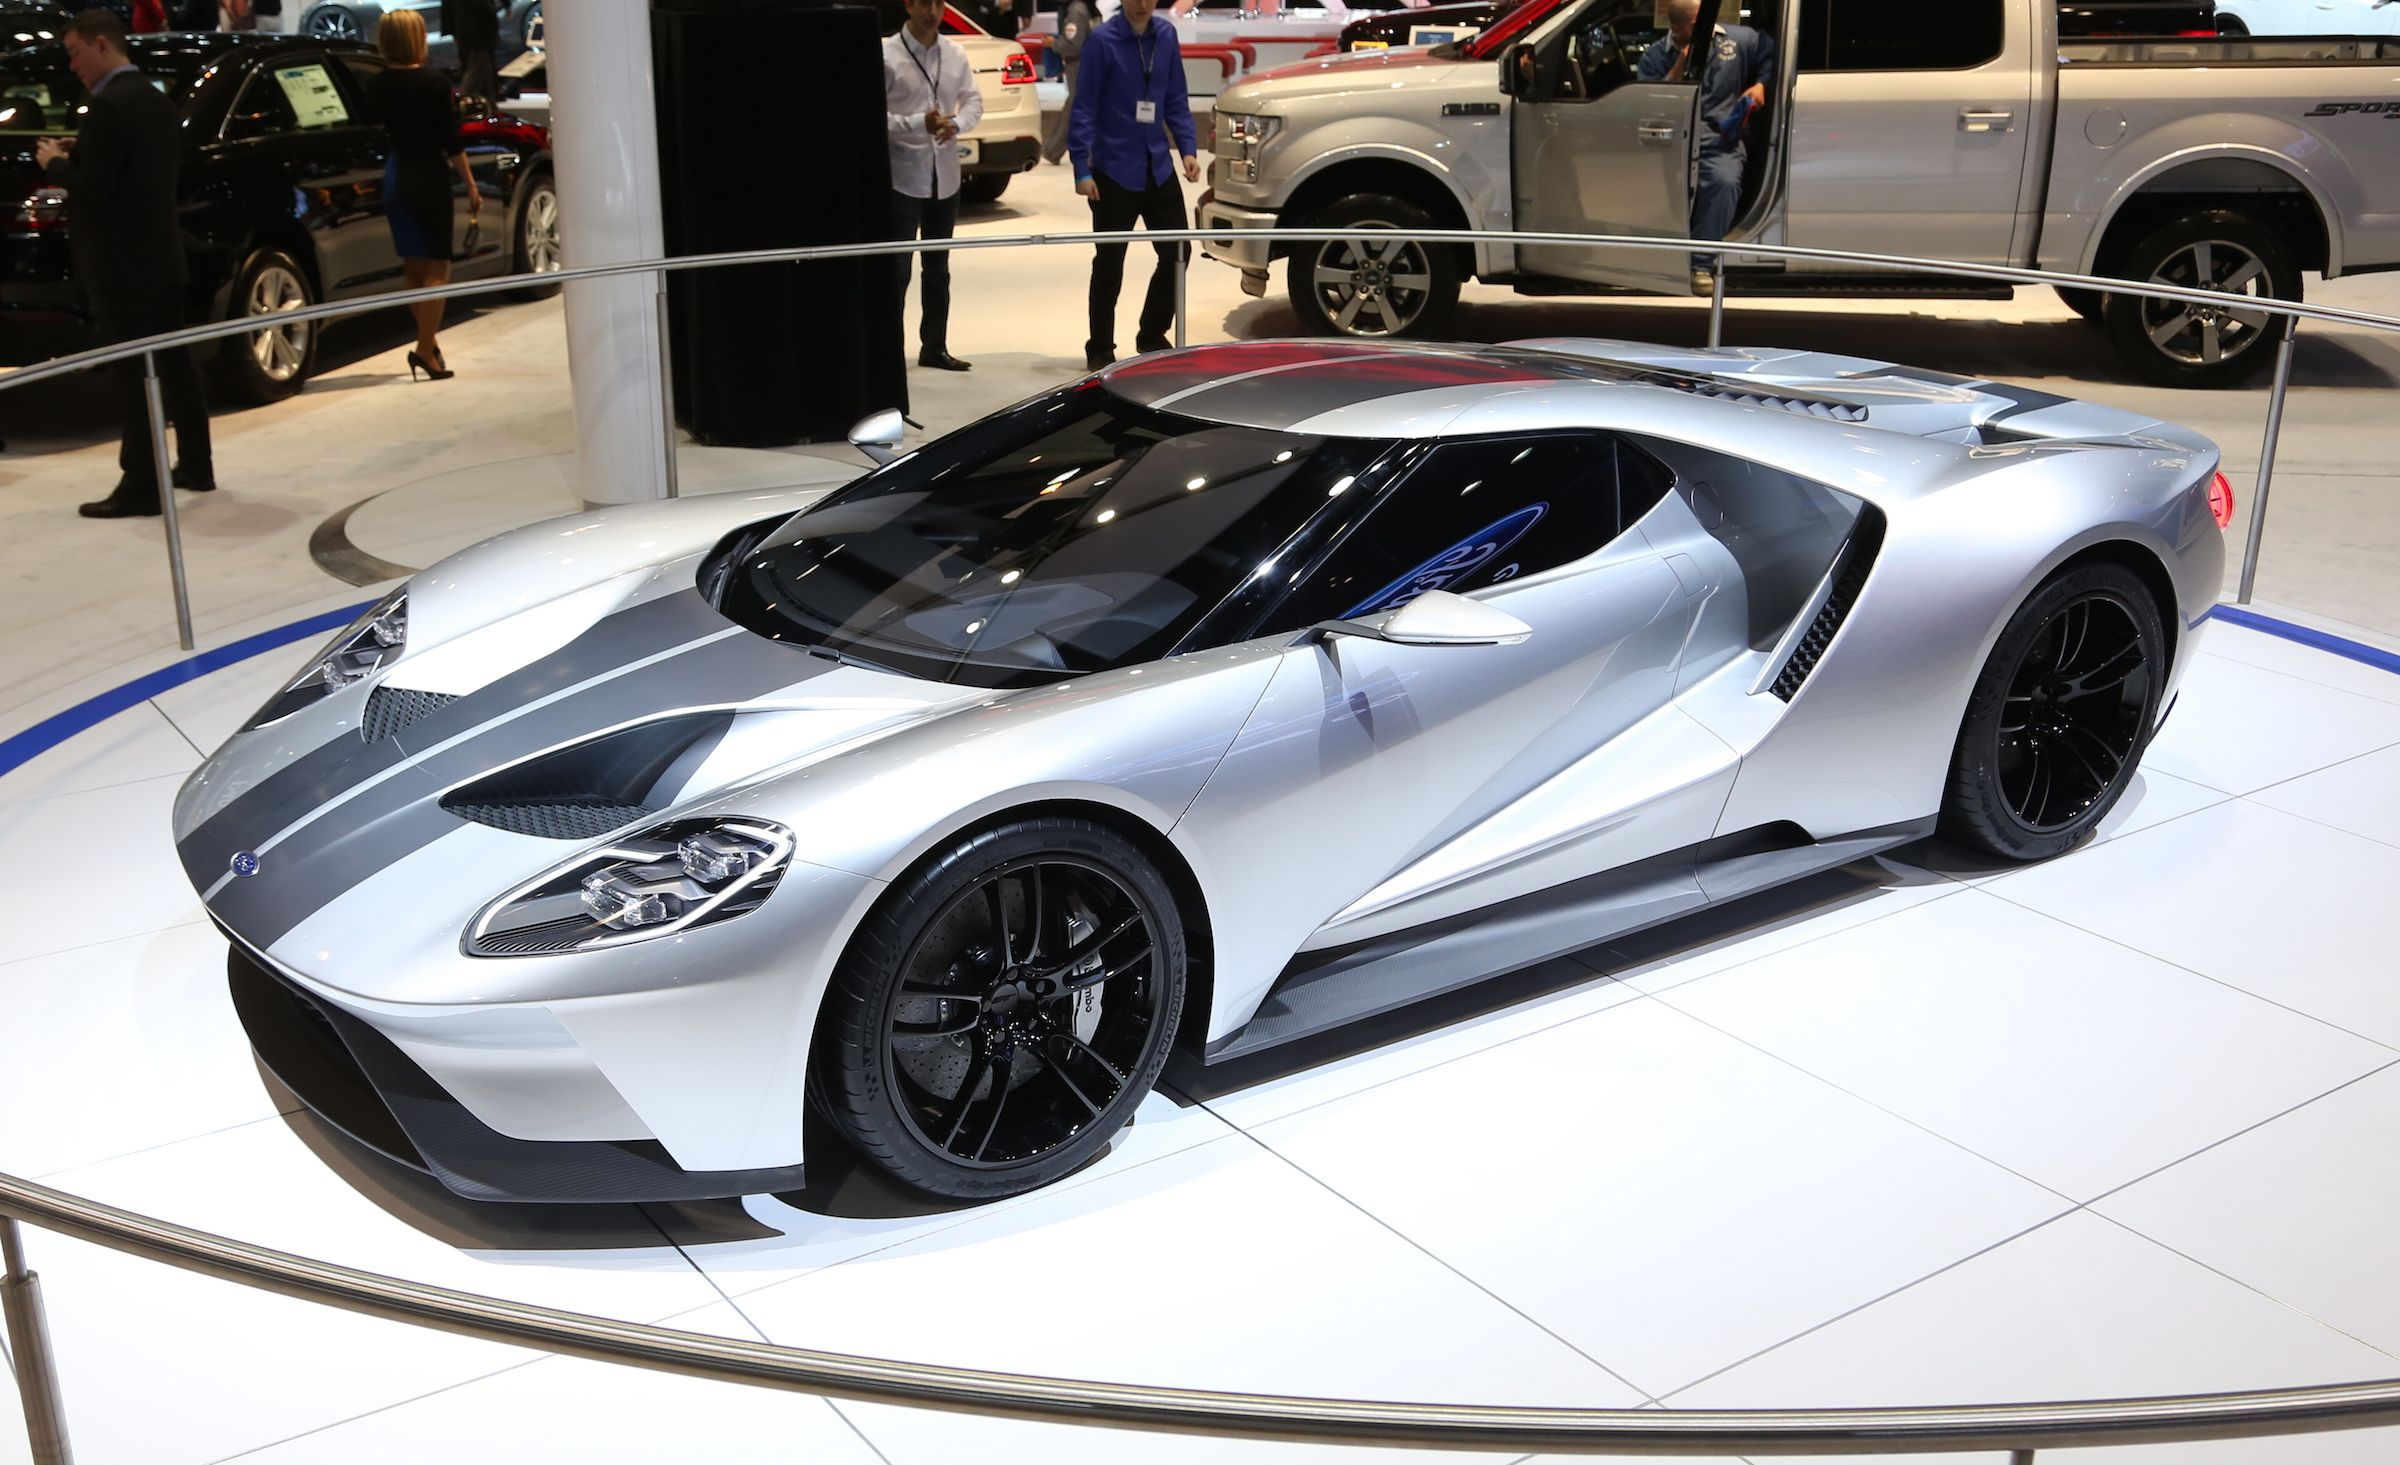 Silver Fox The New Ford Gt Looks Damn Good In Silver And Racing Stripes